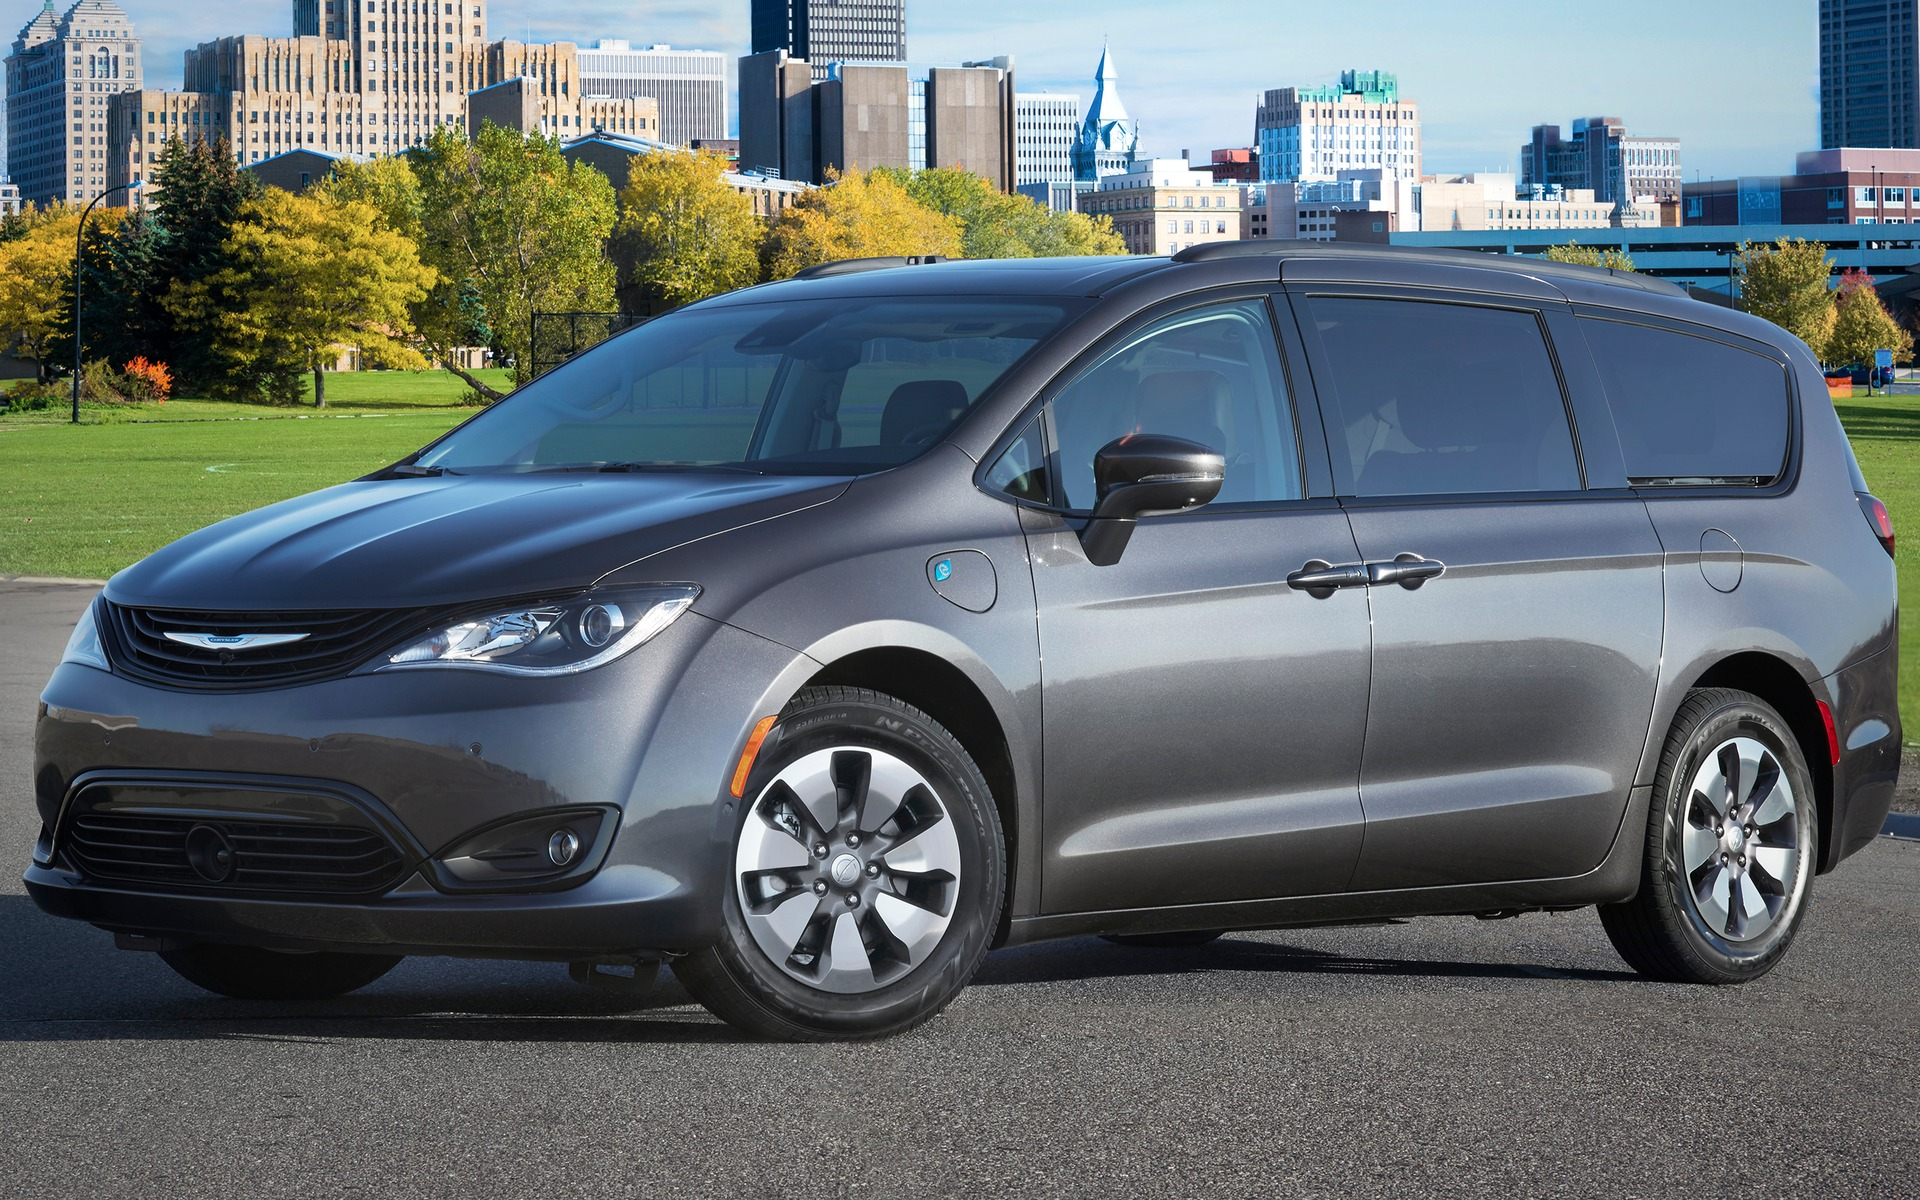 Chrysler Pacifica hybride 2019 : la familiale électrique 350965_2019_Chrysler_Pacifica